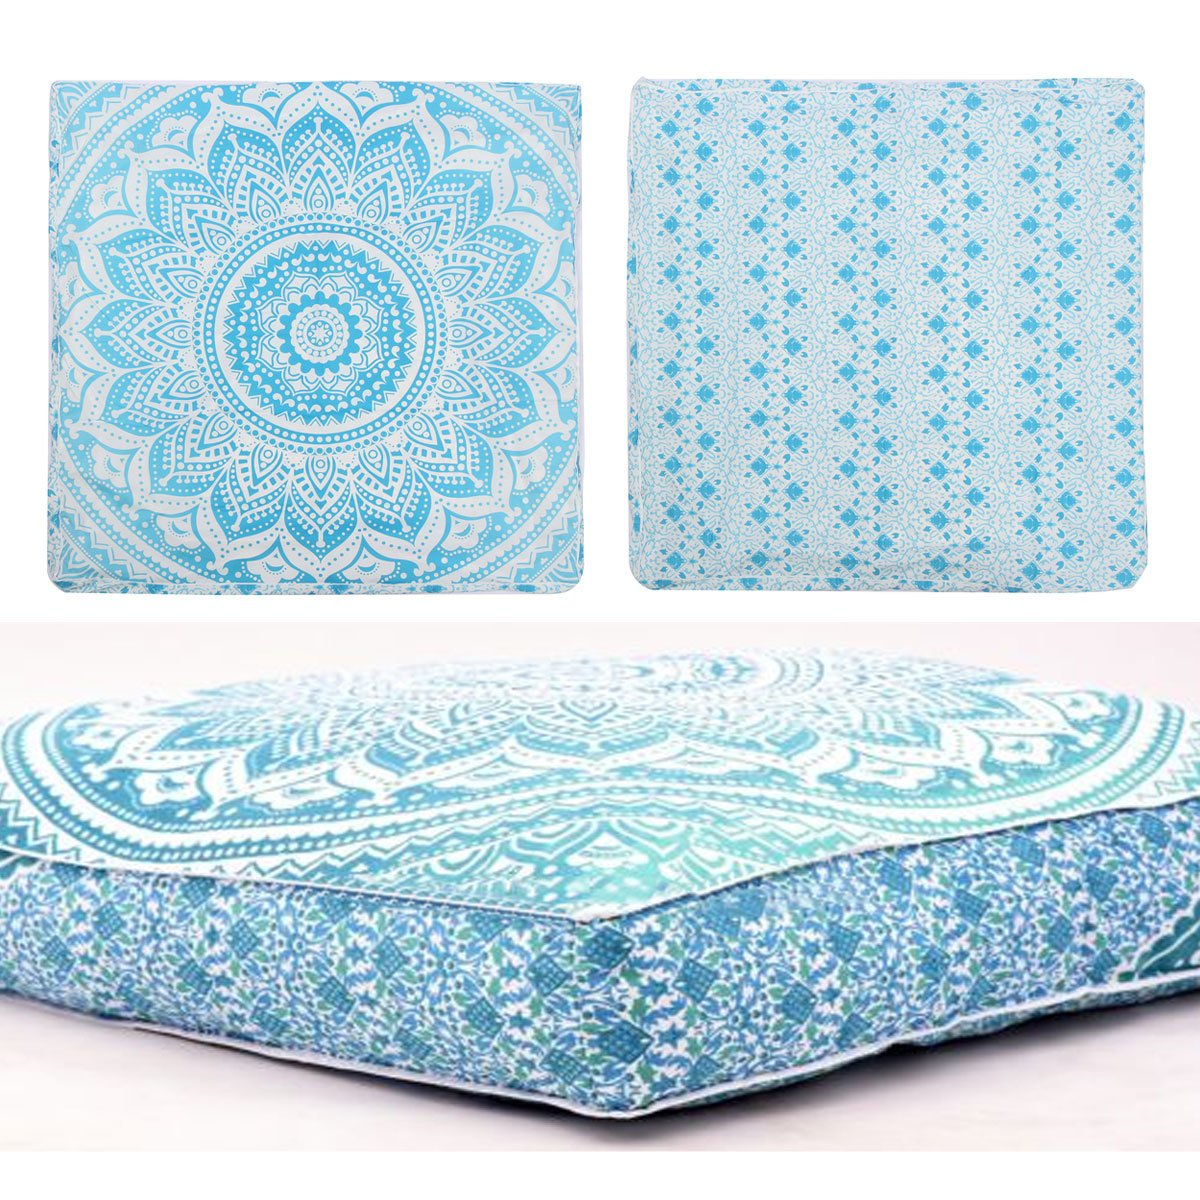 Third Eye Export - Indian Mandala Floor Pillow Square Ottoman Pouf Daybed Oversized Cushion Cover Cotton Seating Ottoman Poufs Dog/Pets Bed (Green)